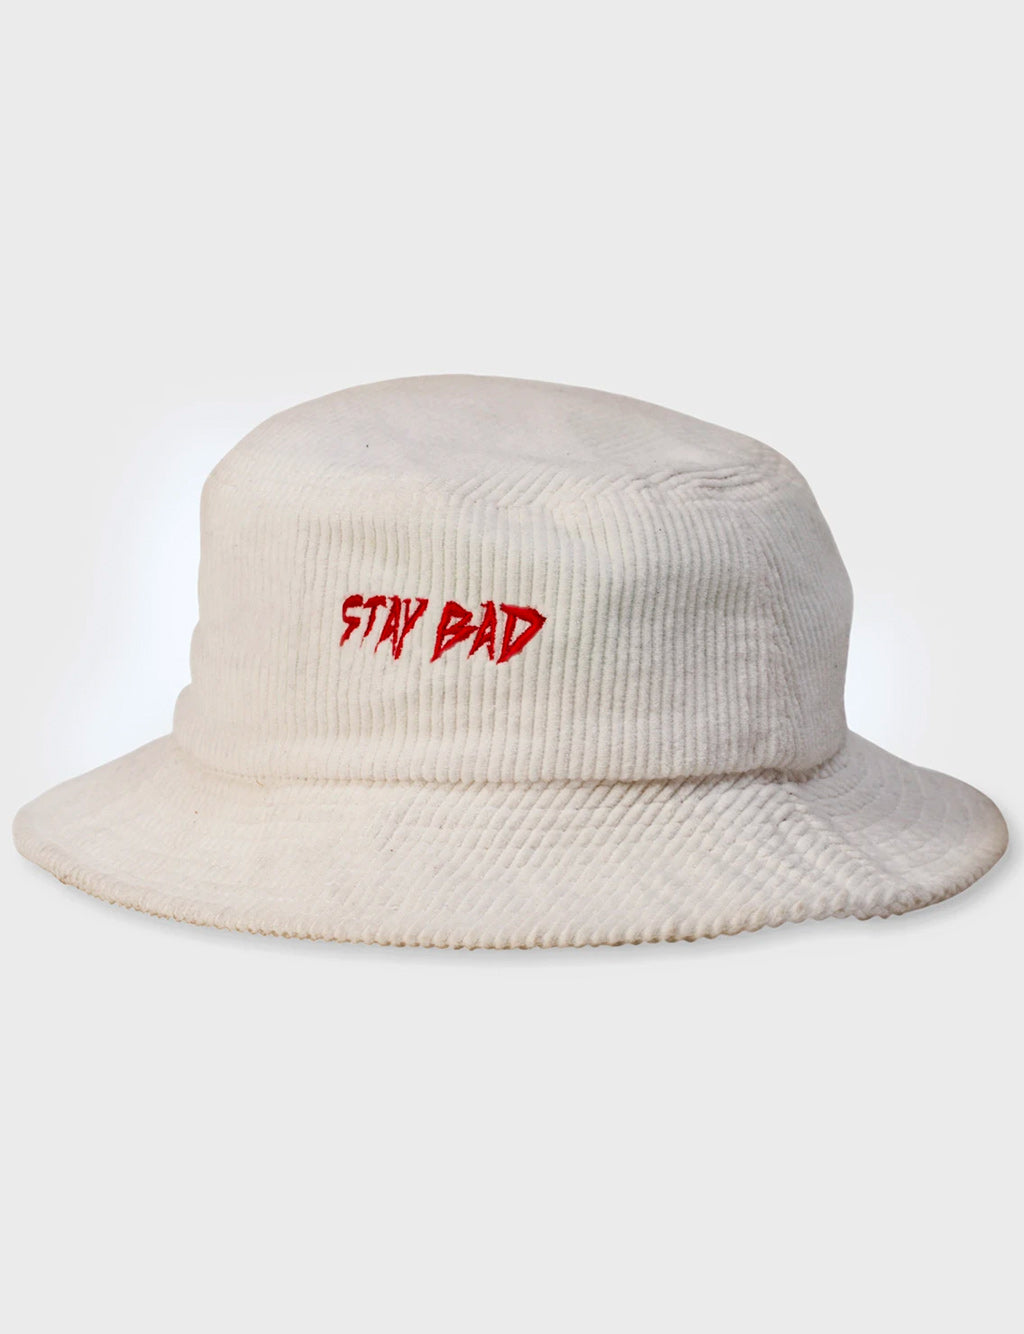 STAY BAD CORDUROY BUCKET HAT - OFF WHITE